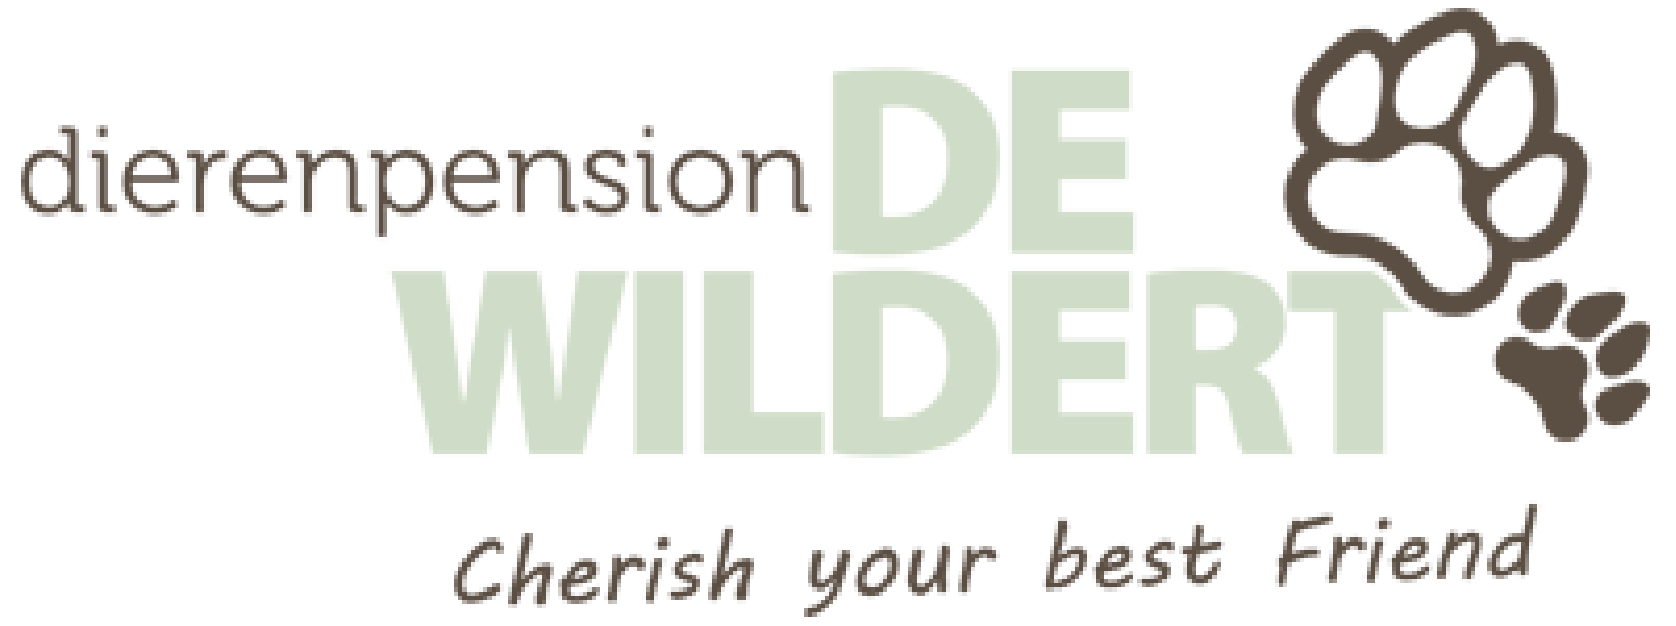 Dierenpension de Wildert